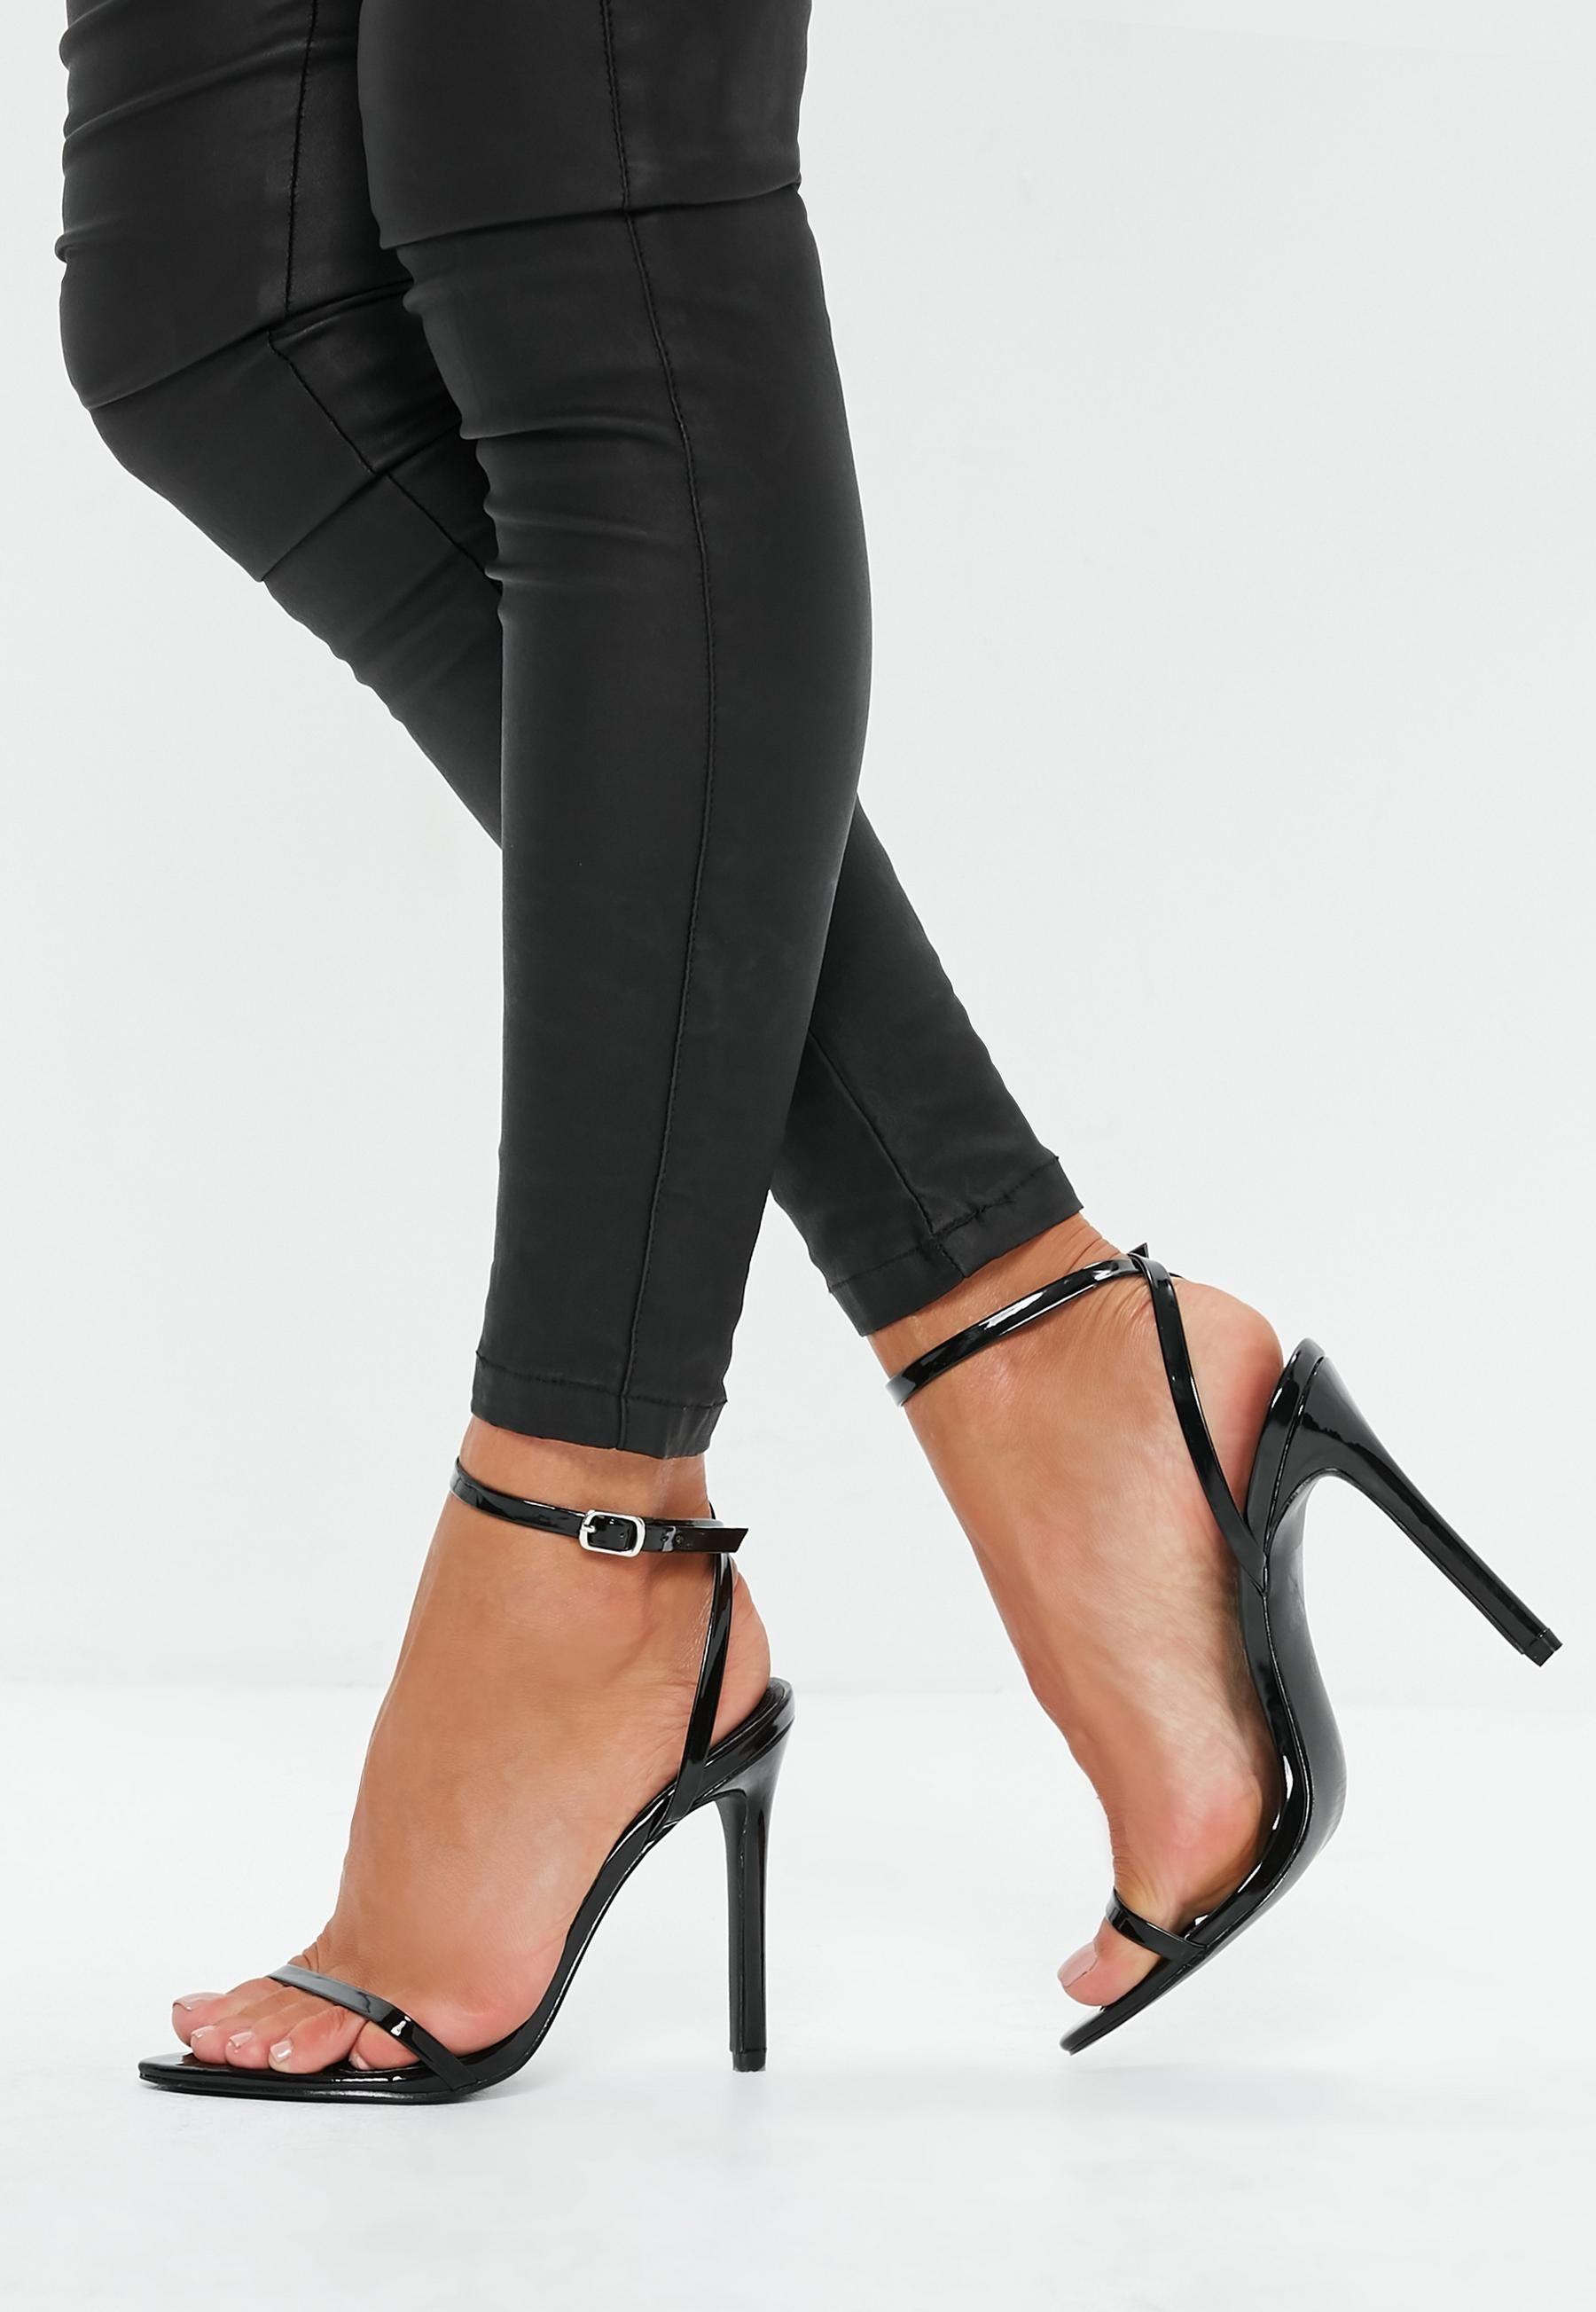 7672d4c651c Black Pointed Toe Barely There Patent Heels in 2019 | sexy women's ...